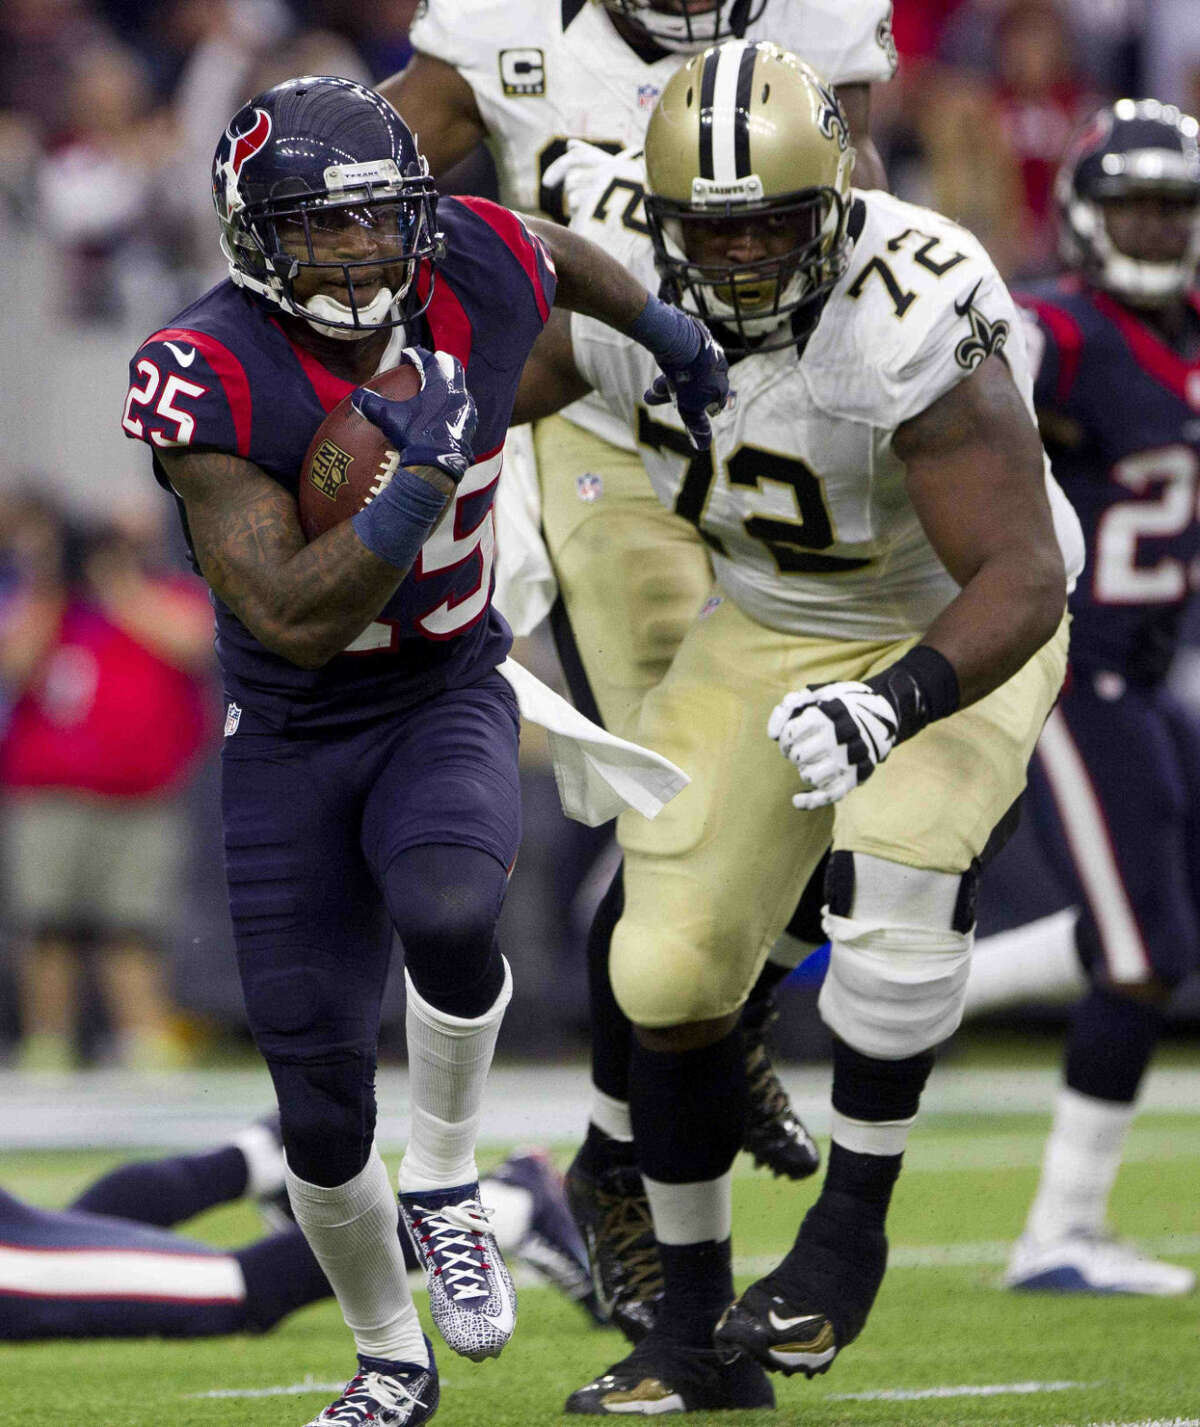 Houston Texans cornerback Kareem Jackson returns an interception 50-yards during the fourth quarter of an NFL game Sunday, Nov. 29, 2015, in Houston. Go to HCNpics.com to view more photos from the game.